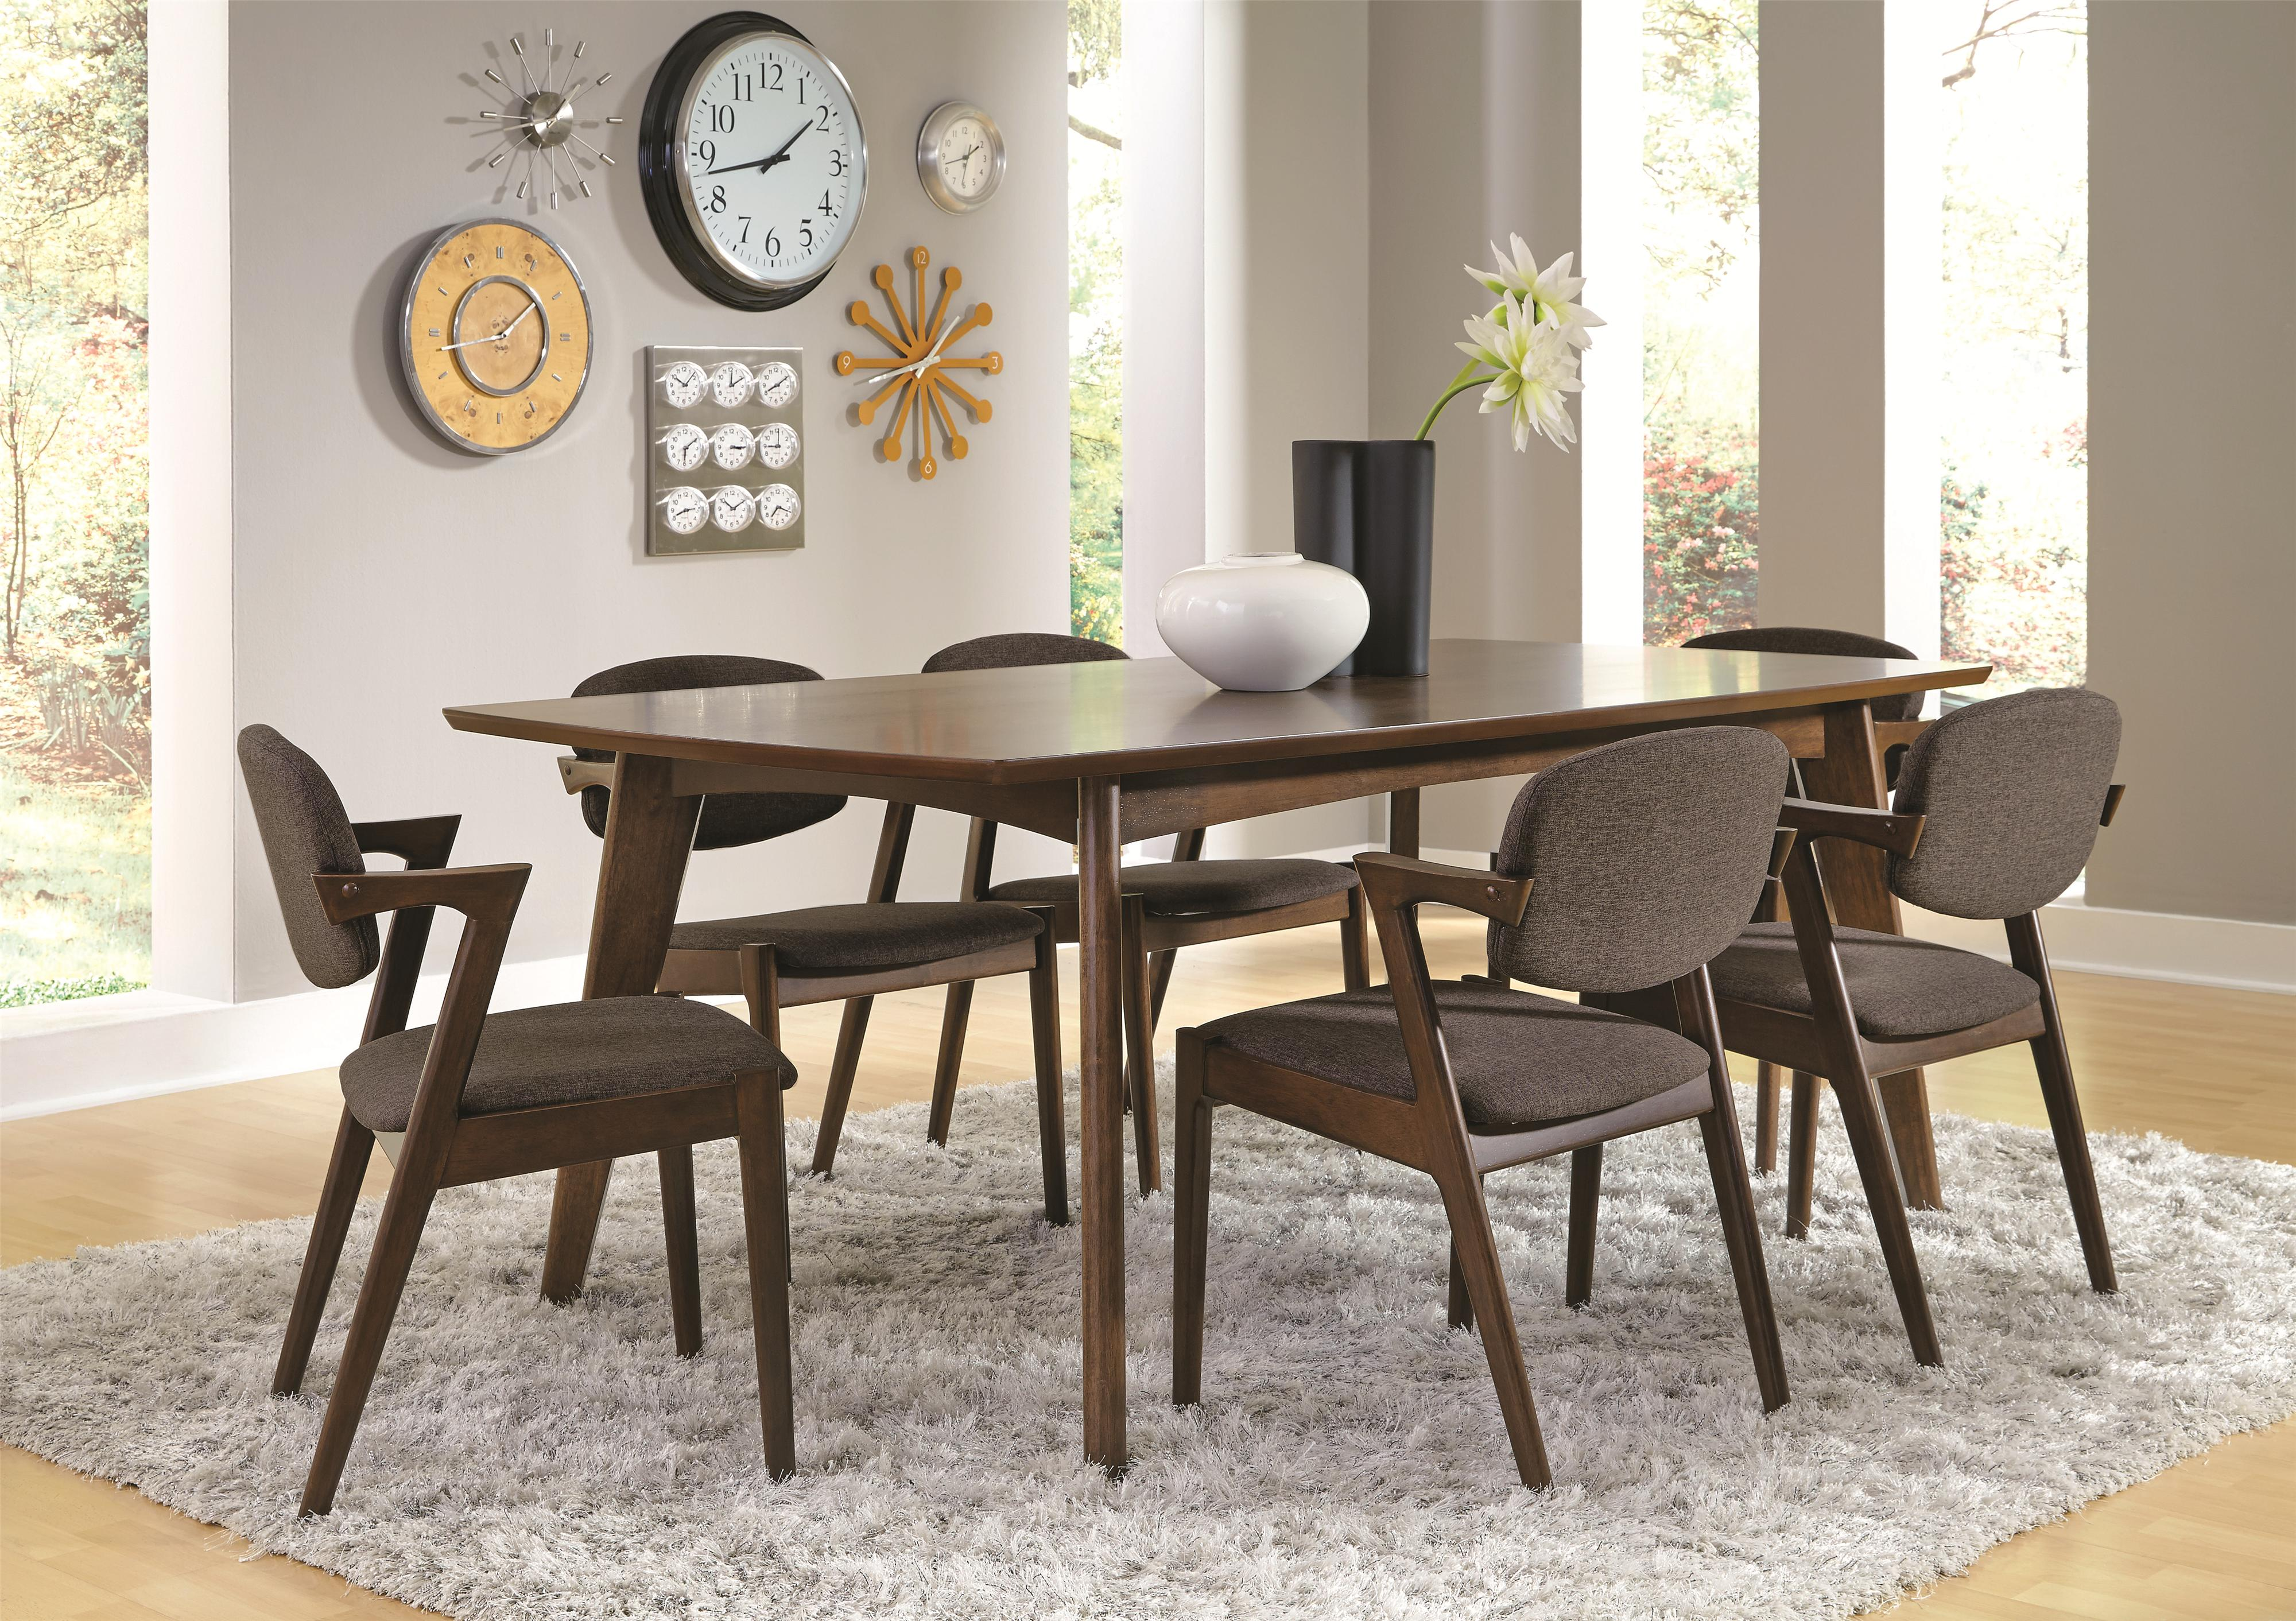 Coaster Malone Mid Century Modern Casual Dining Table   Coaster Fine  Furniture